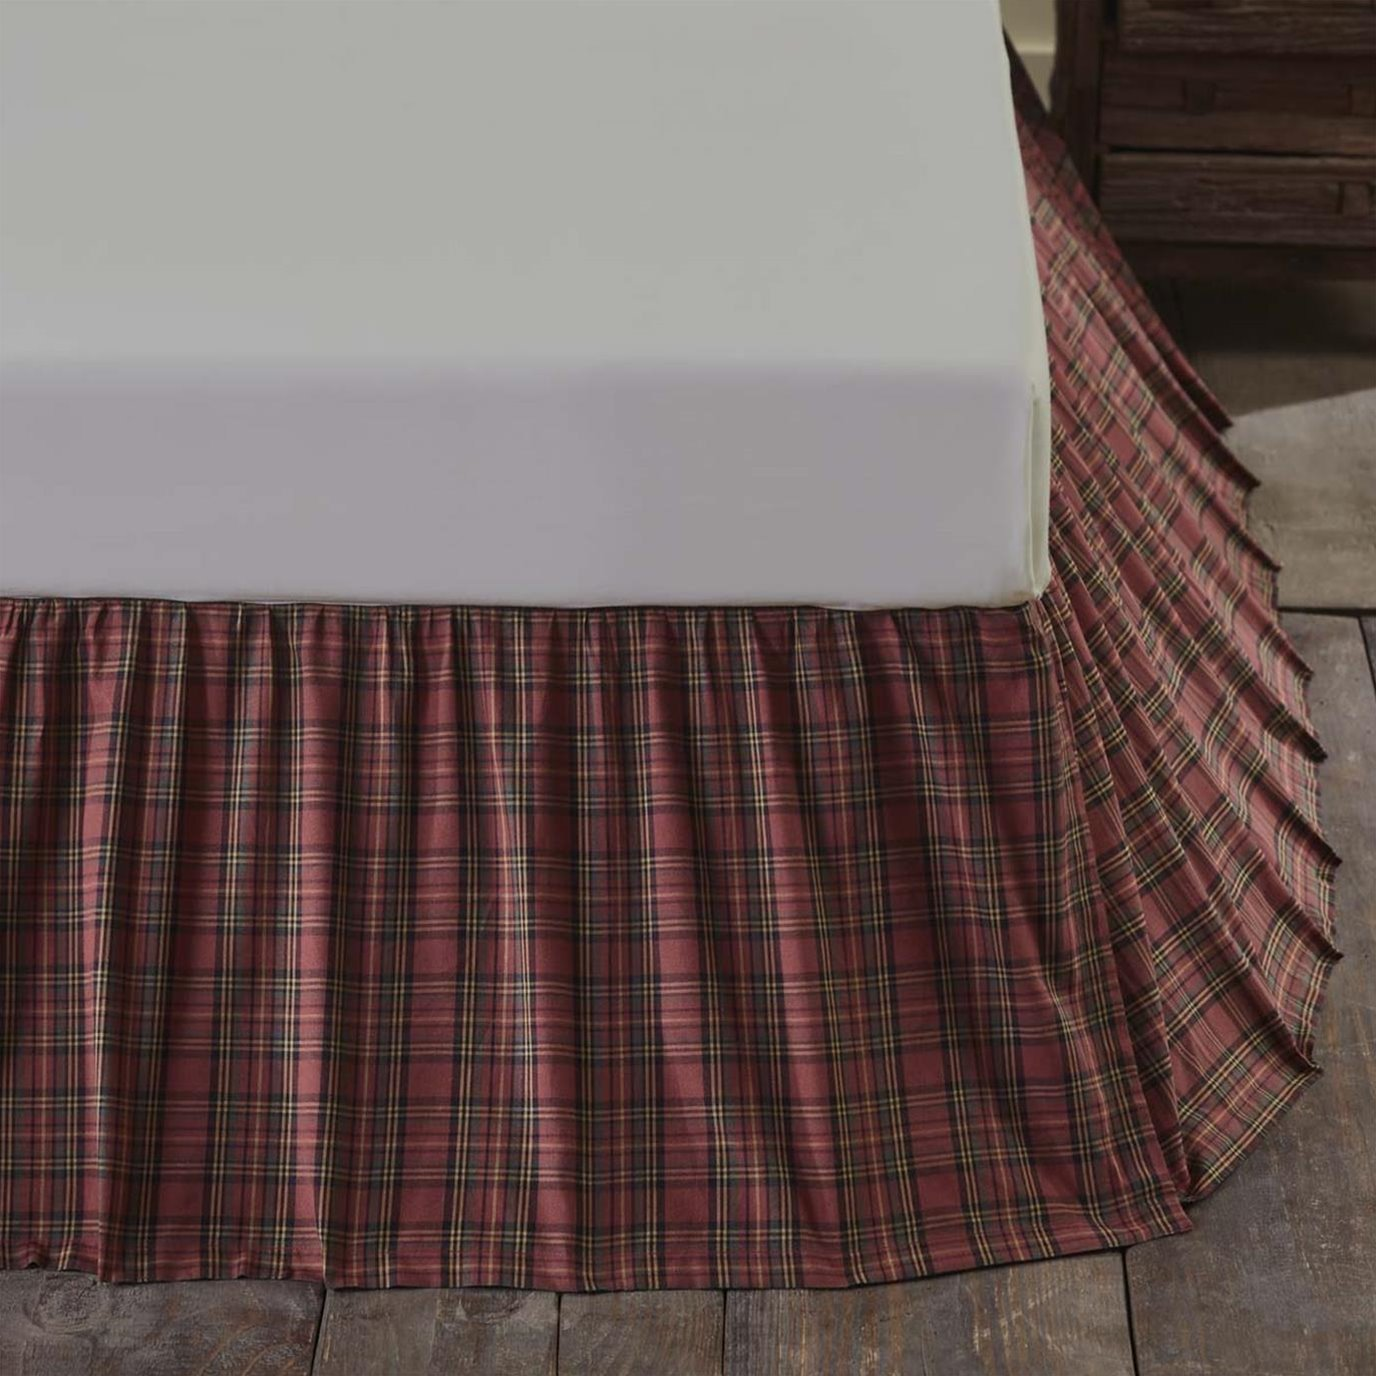 Tartan Red Plaid Queen Bed Skirt 60x80x16